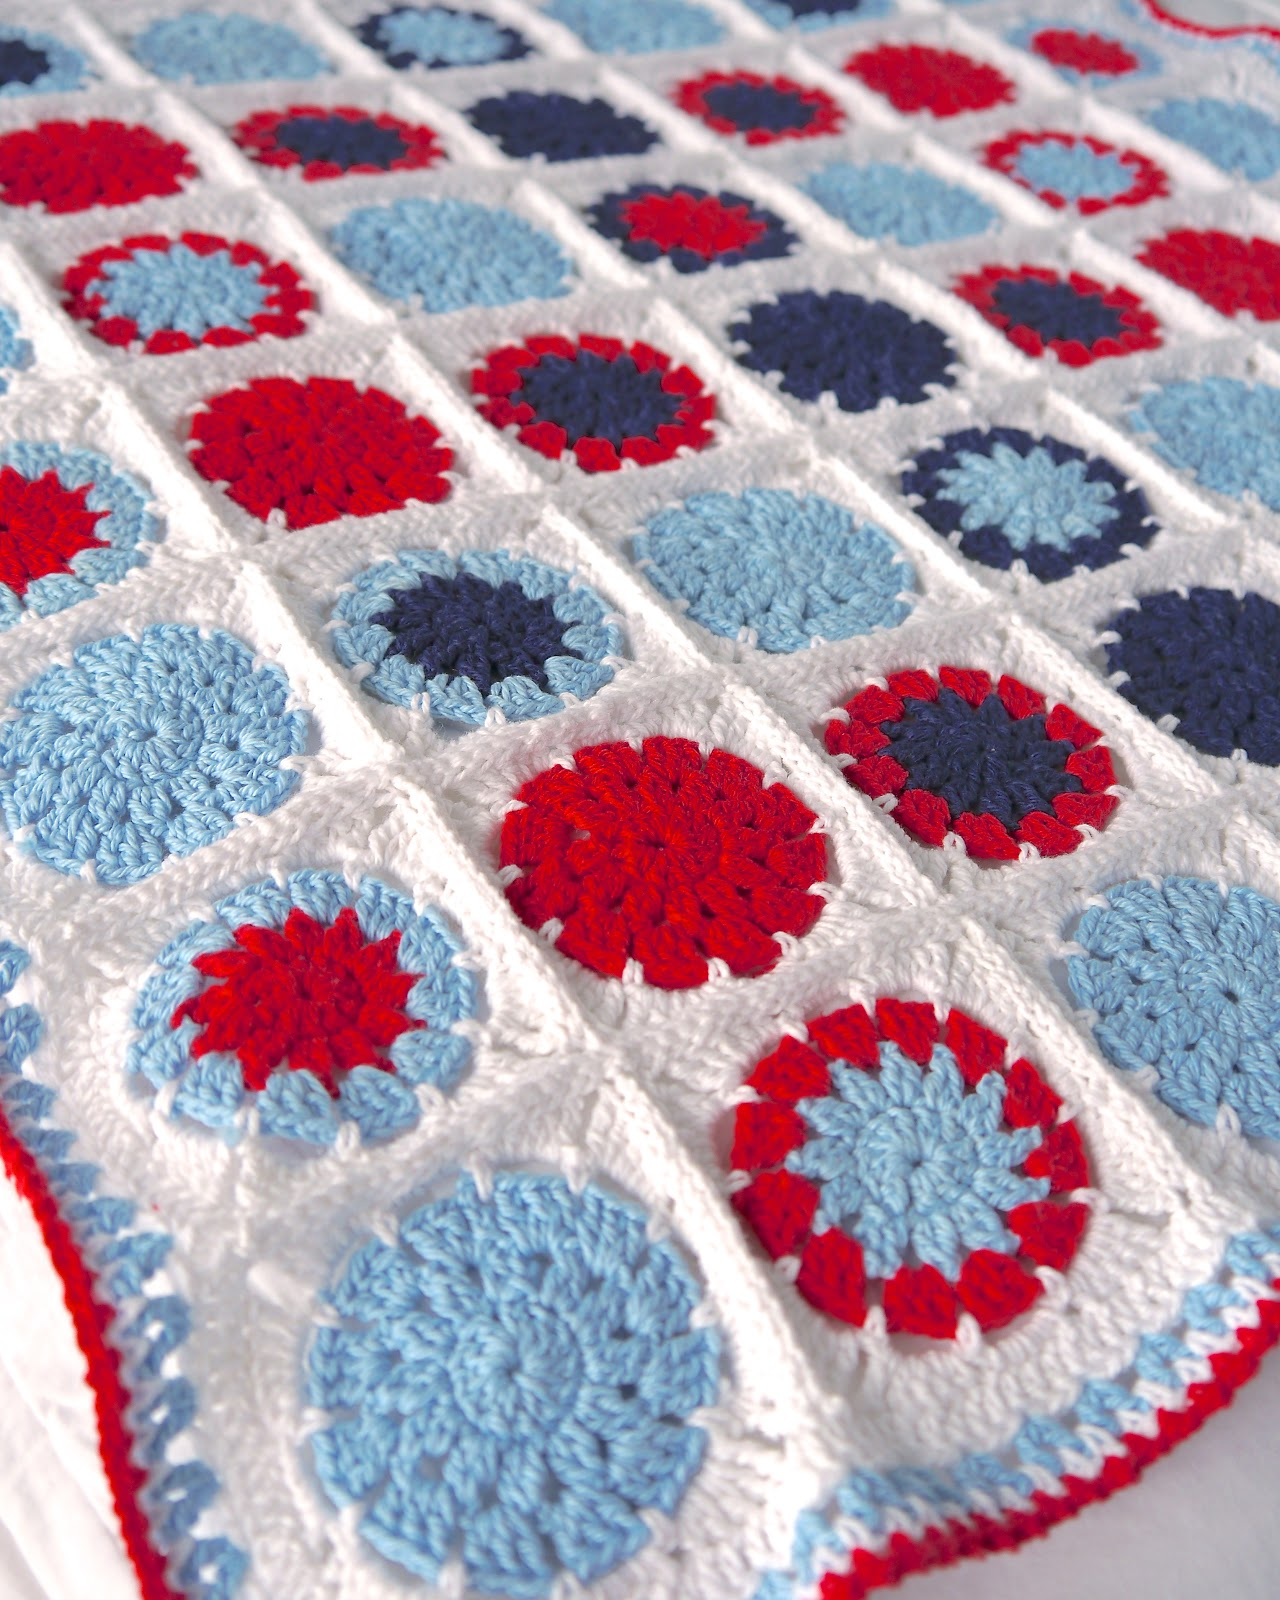 Free Crochet Pattern For Circle Baby Blanket : Sarita creative: Make it // Crochet Cotton Baby Blanket ...